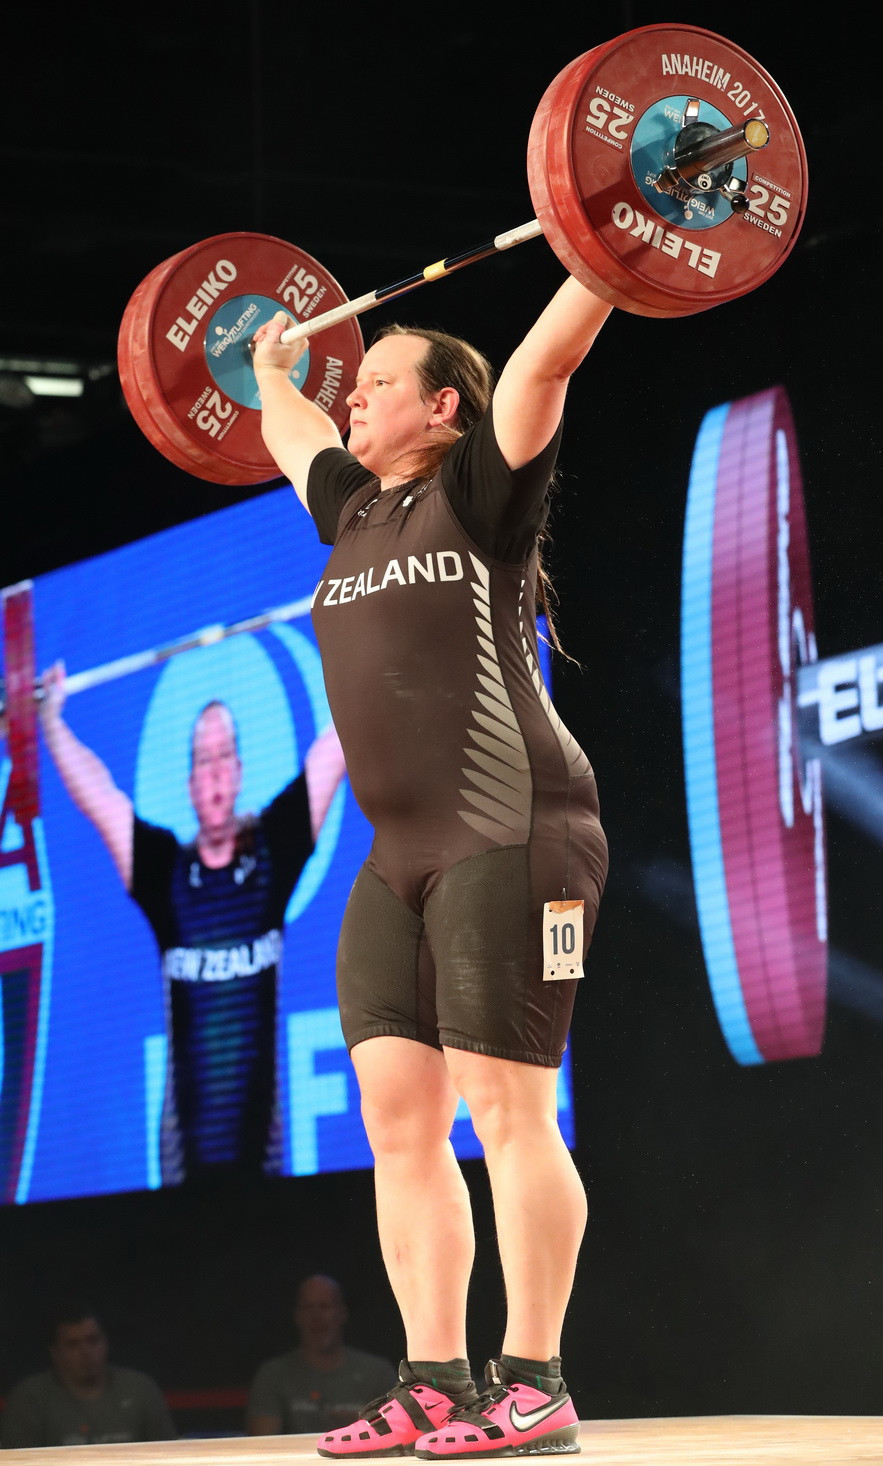 The overall silver medallist was transgender athlete Laurel Hubbard of New Zealand ©IWF